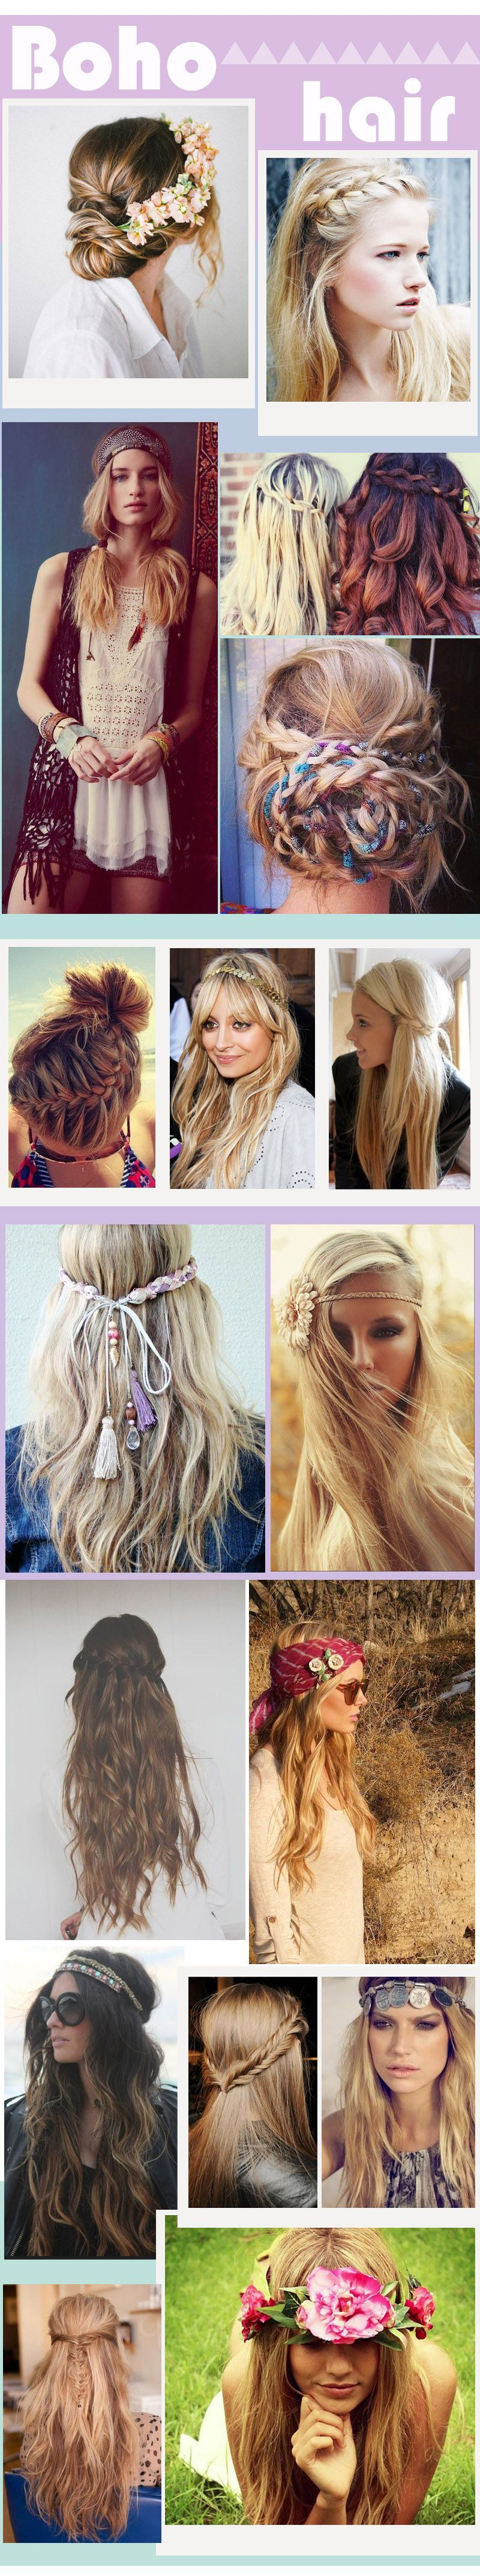 best images about Style on Pinterest  Head scarfs Side shave